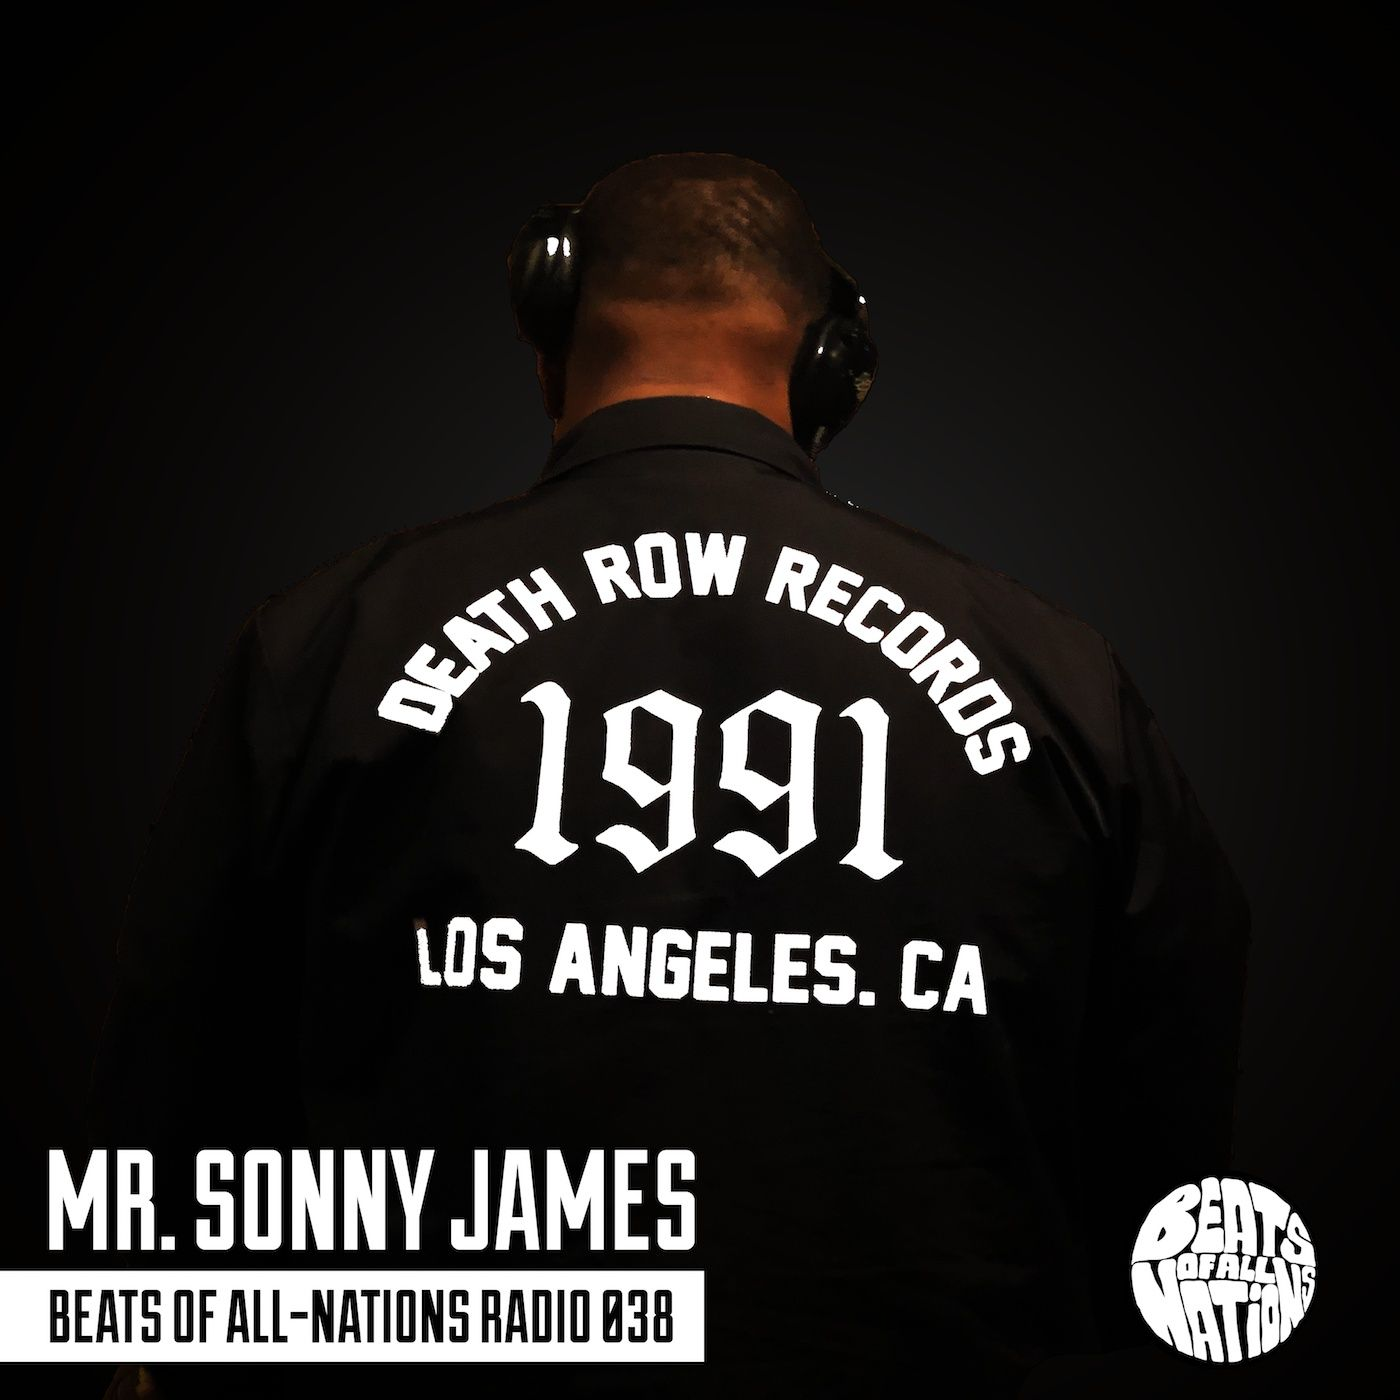 Mr. Sonny James | Beats of All-Nations Radio 038